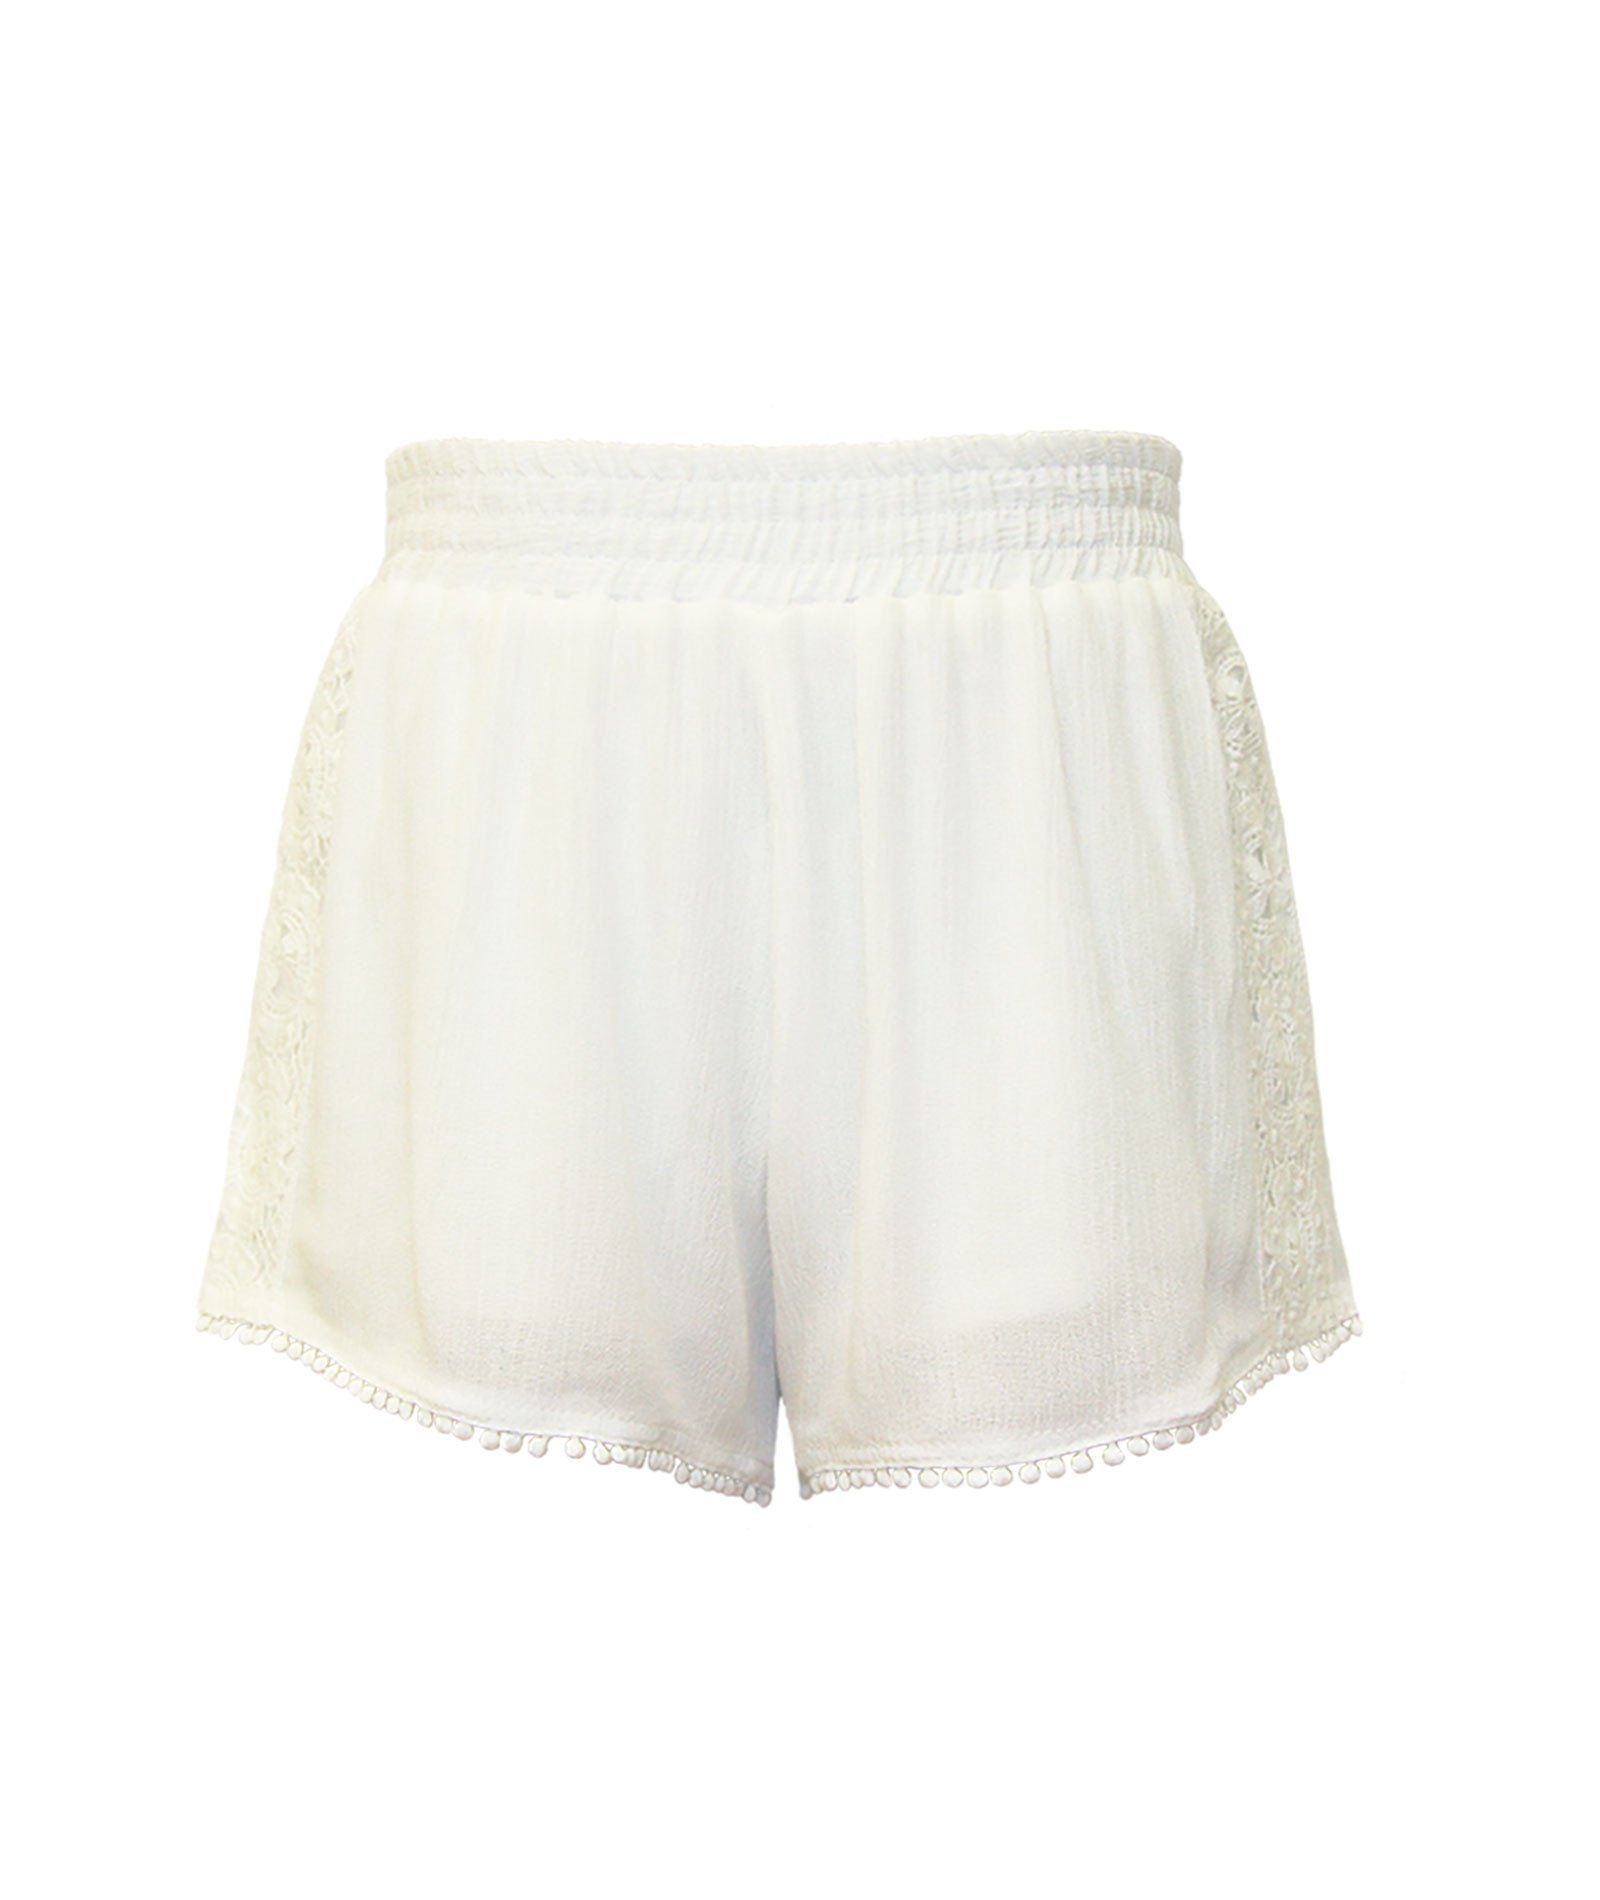 Me.N.U. Girls White Lace Trim Shorts